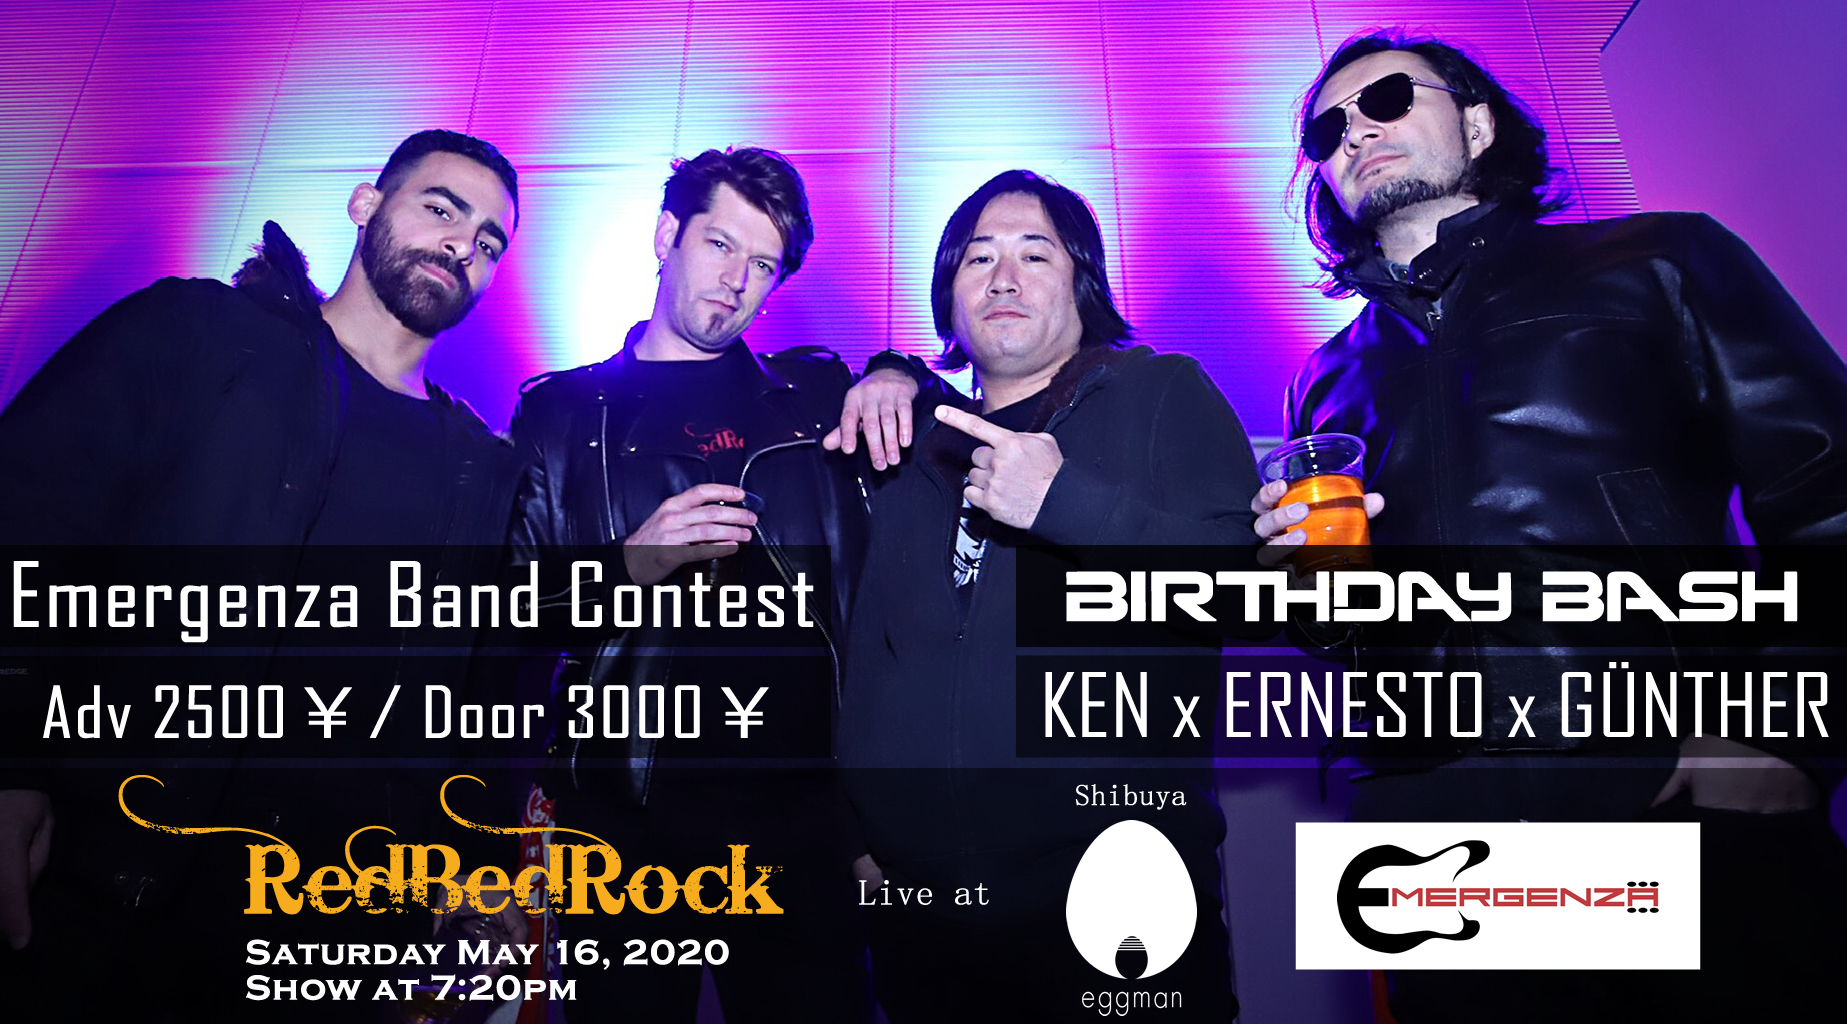 RedBedRock Birthday Bash & Emergenza mega event!